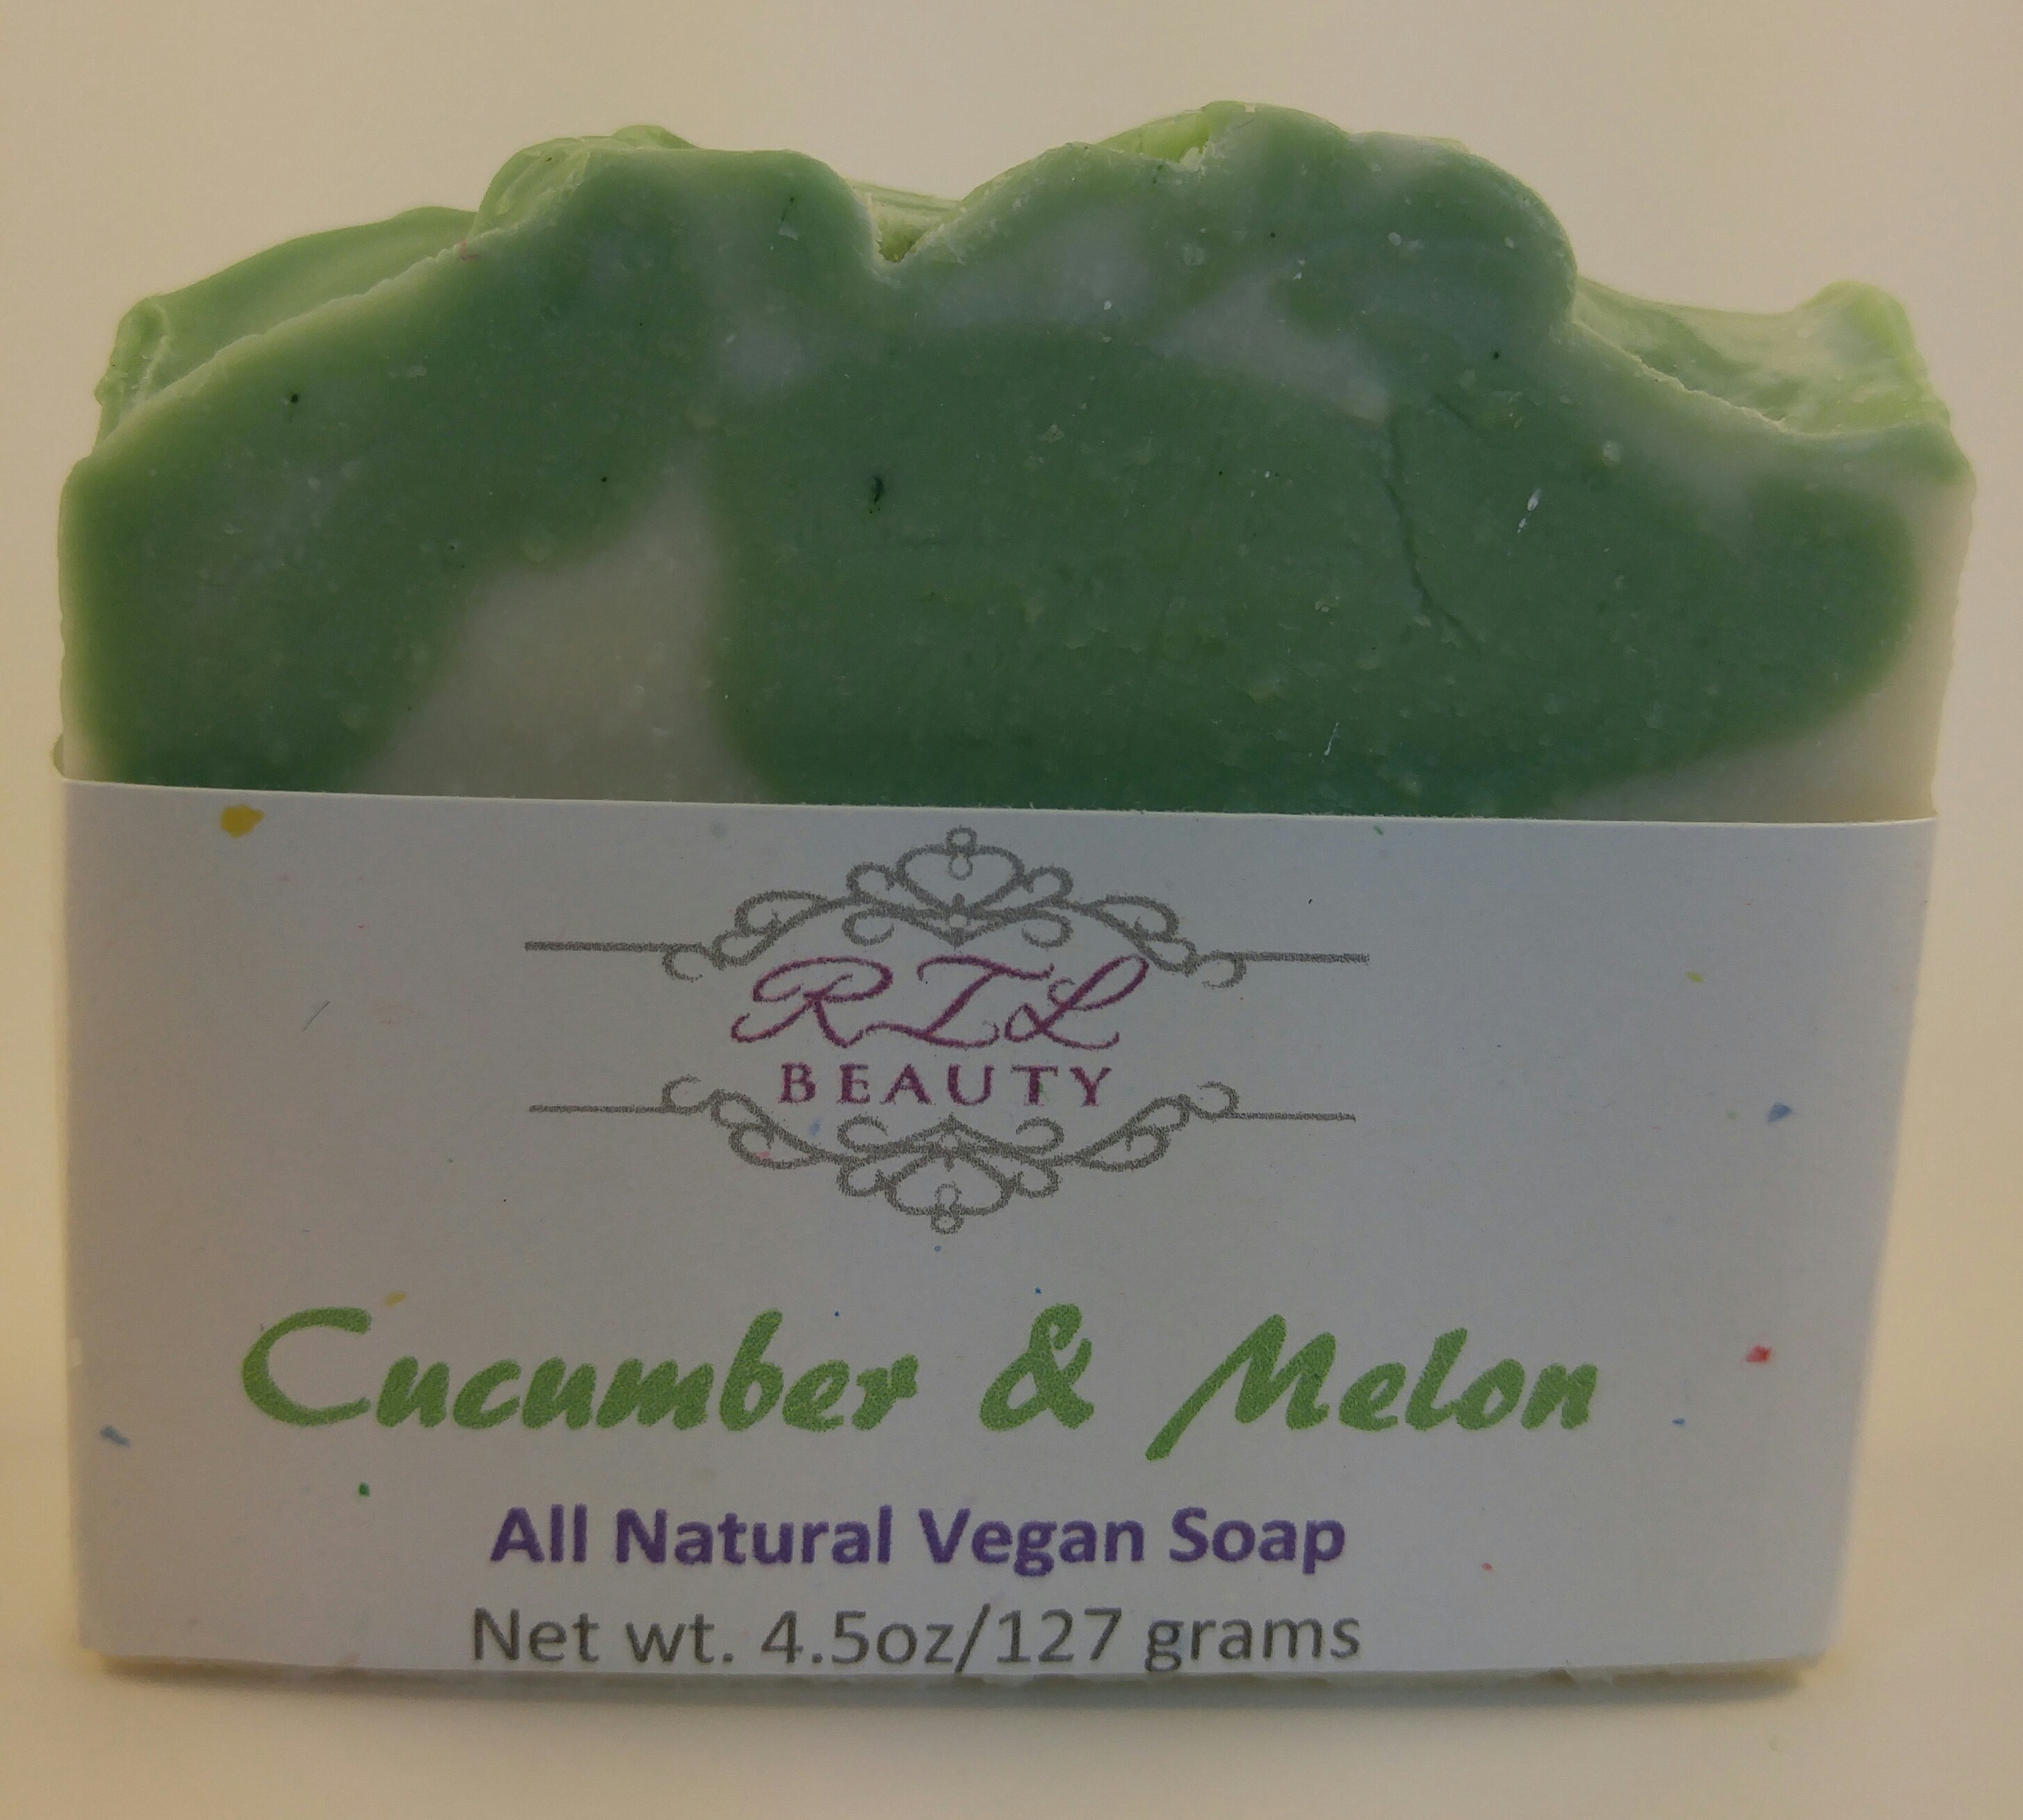 Cucumber Melon Vegan Soap